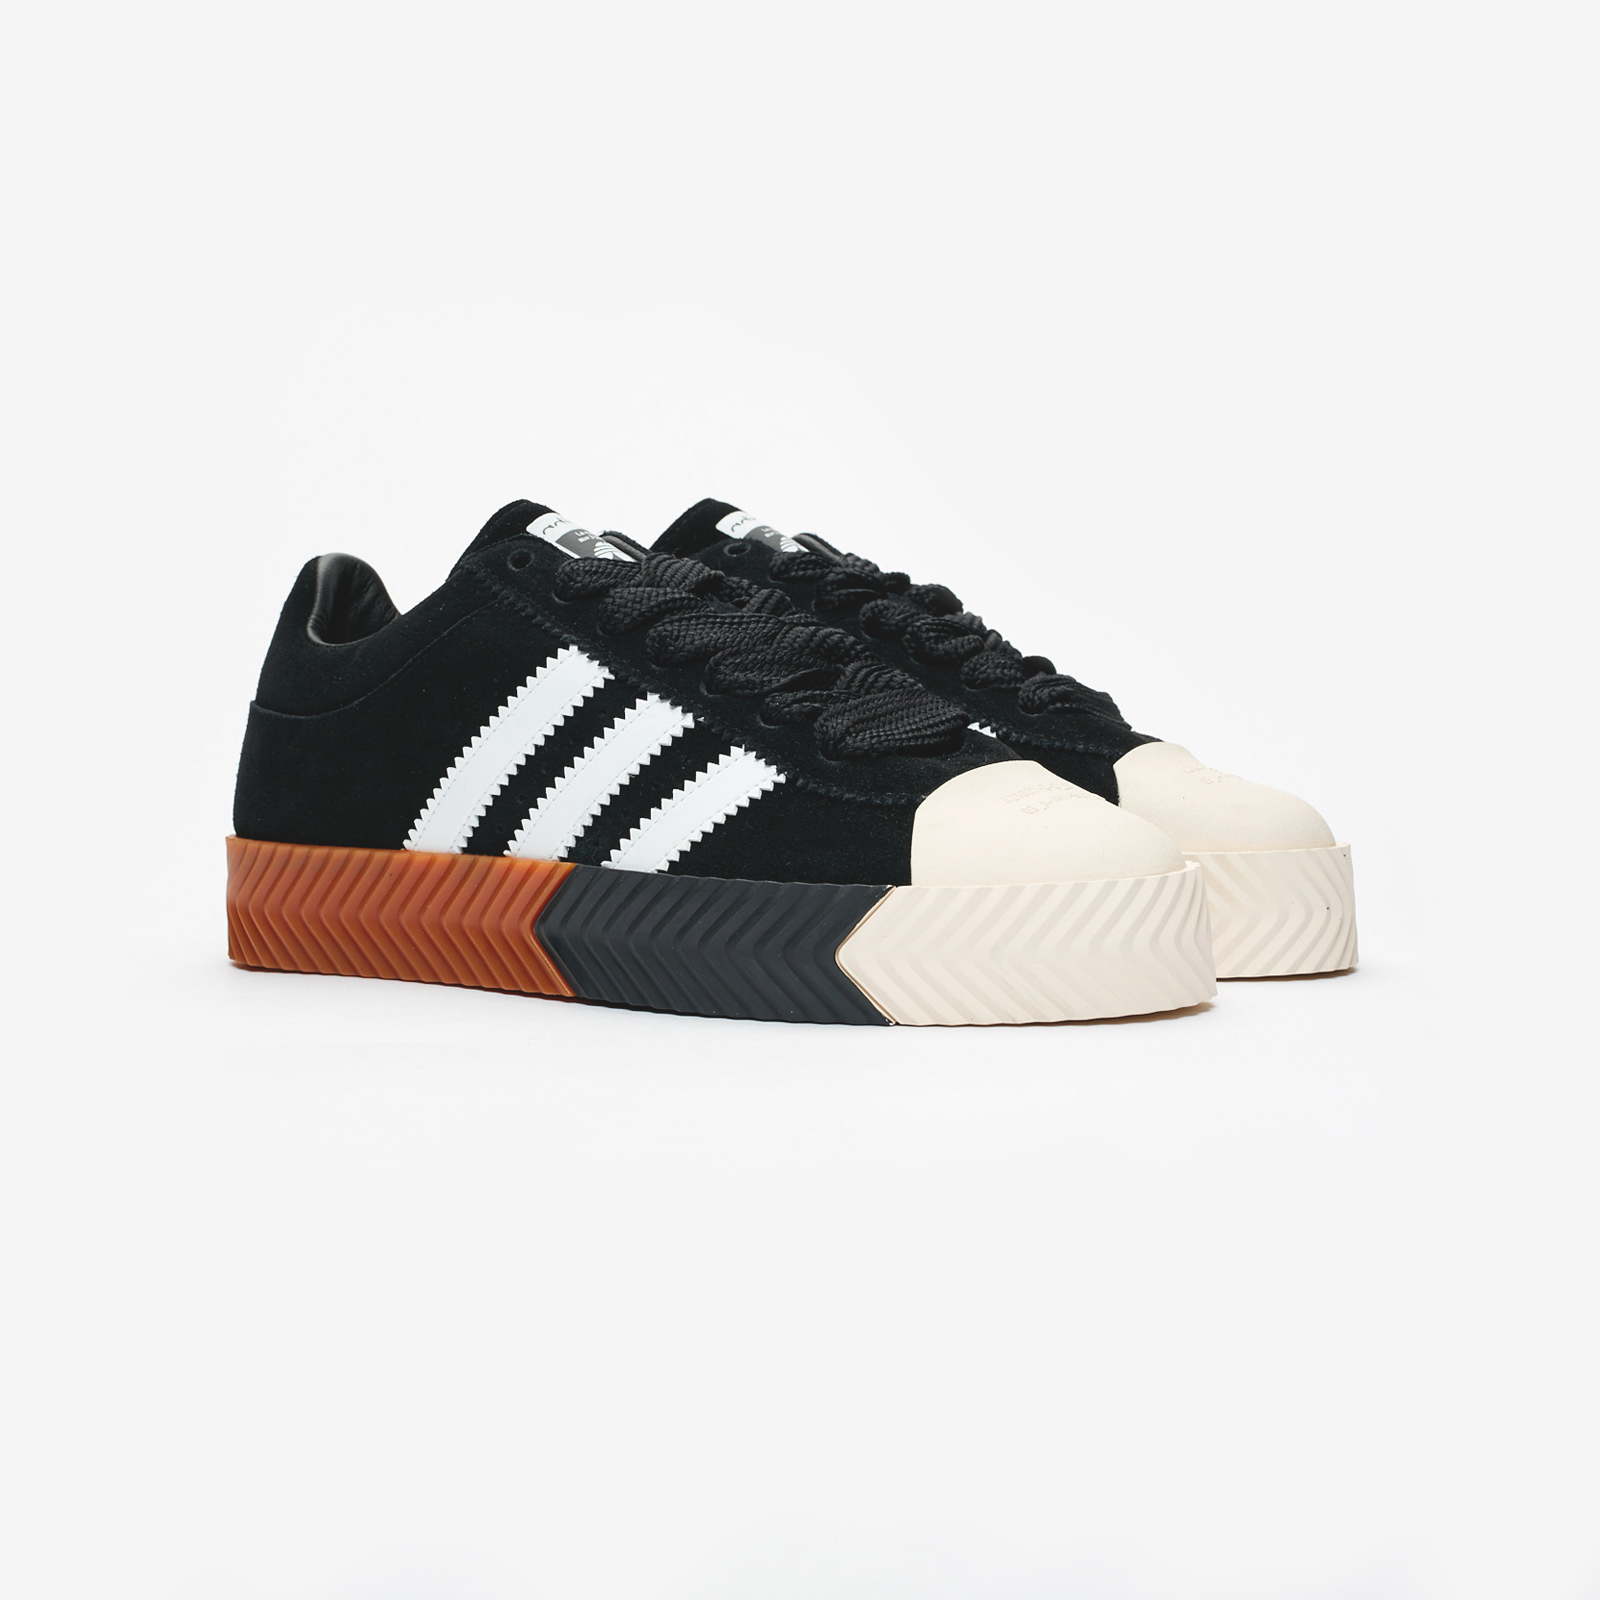 8f75df3804fe adidas Originals by Alexander Wang AW Skate Super